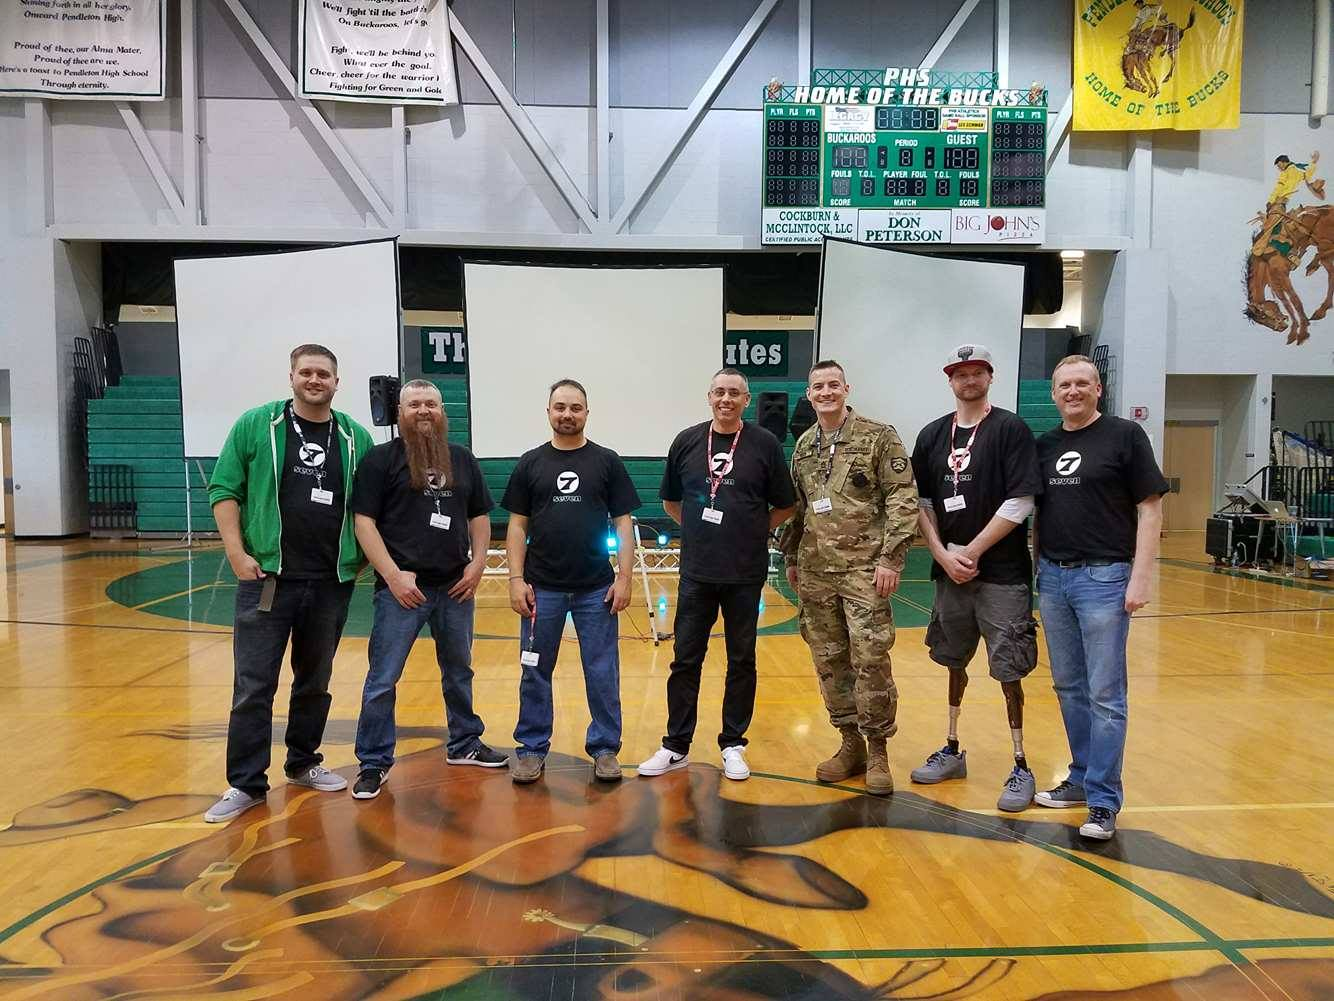 Pictured is the presenters that shared their stories to the students in the schools in Pendleton, Or.